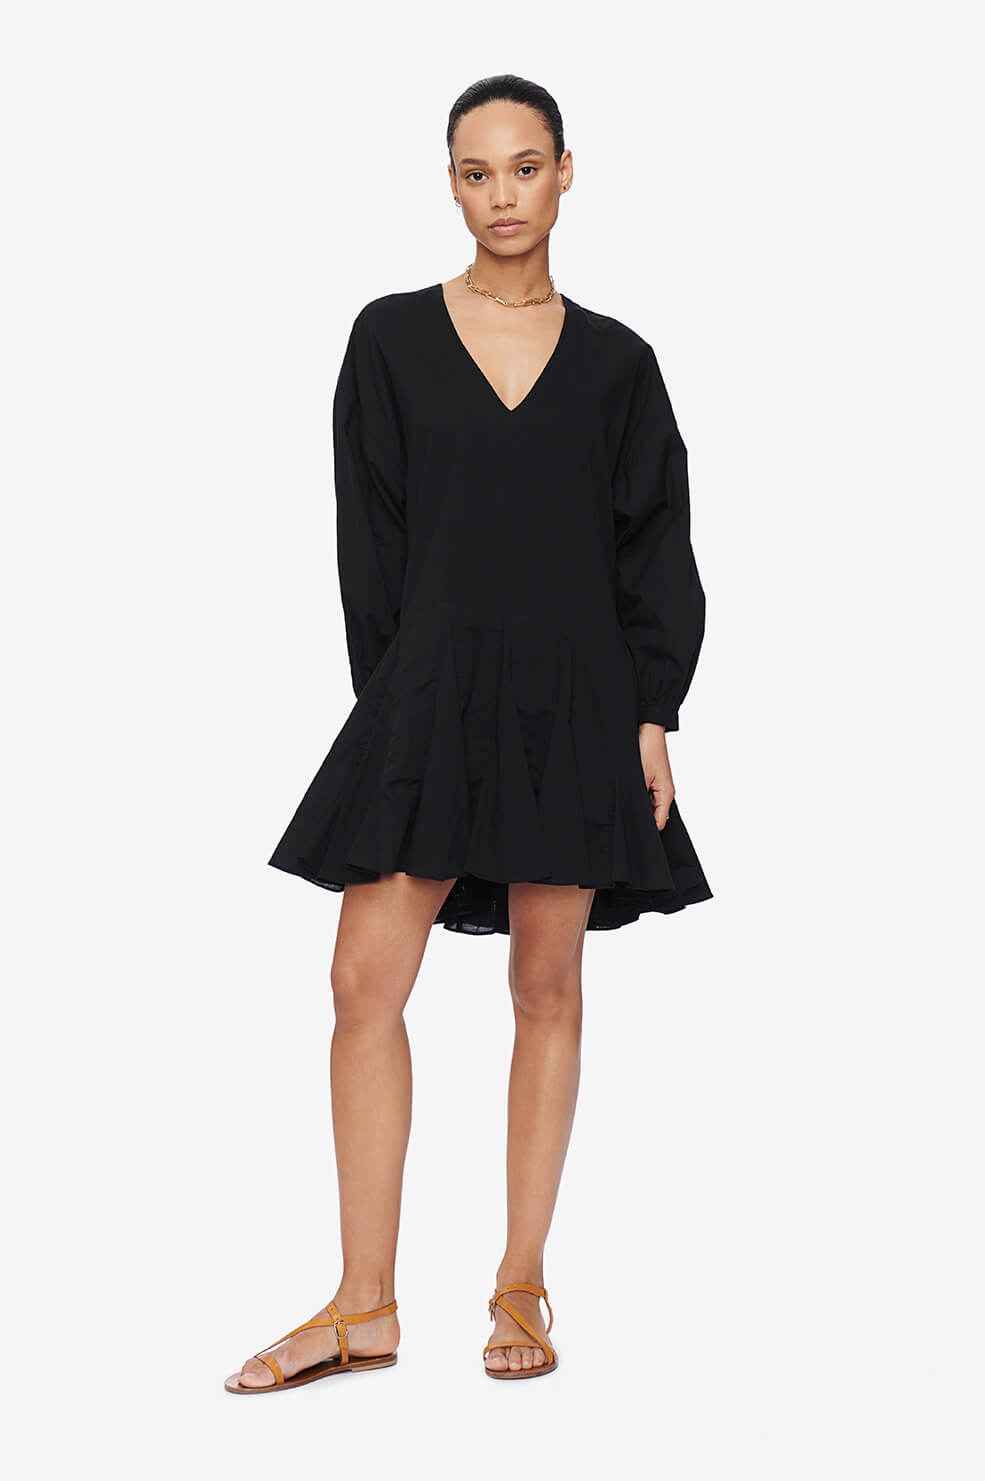 ANINE BING Peyton Dress - Black